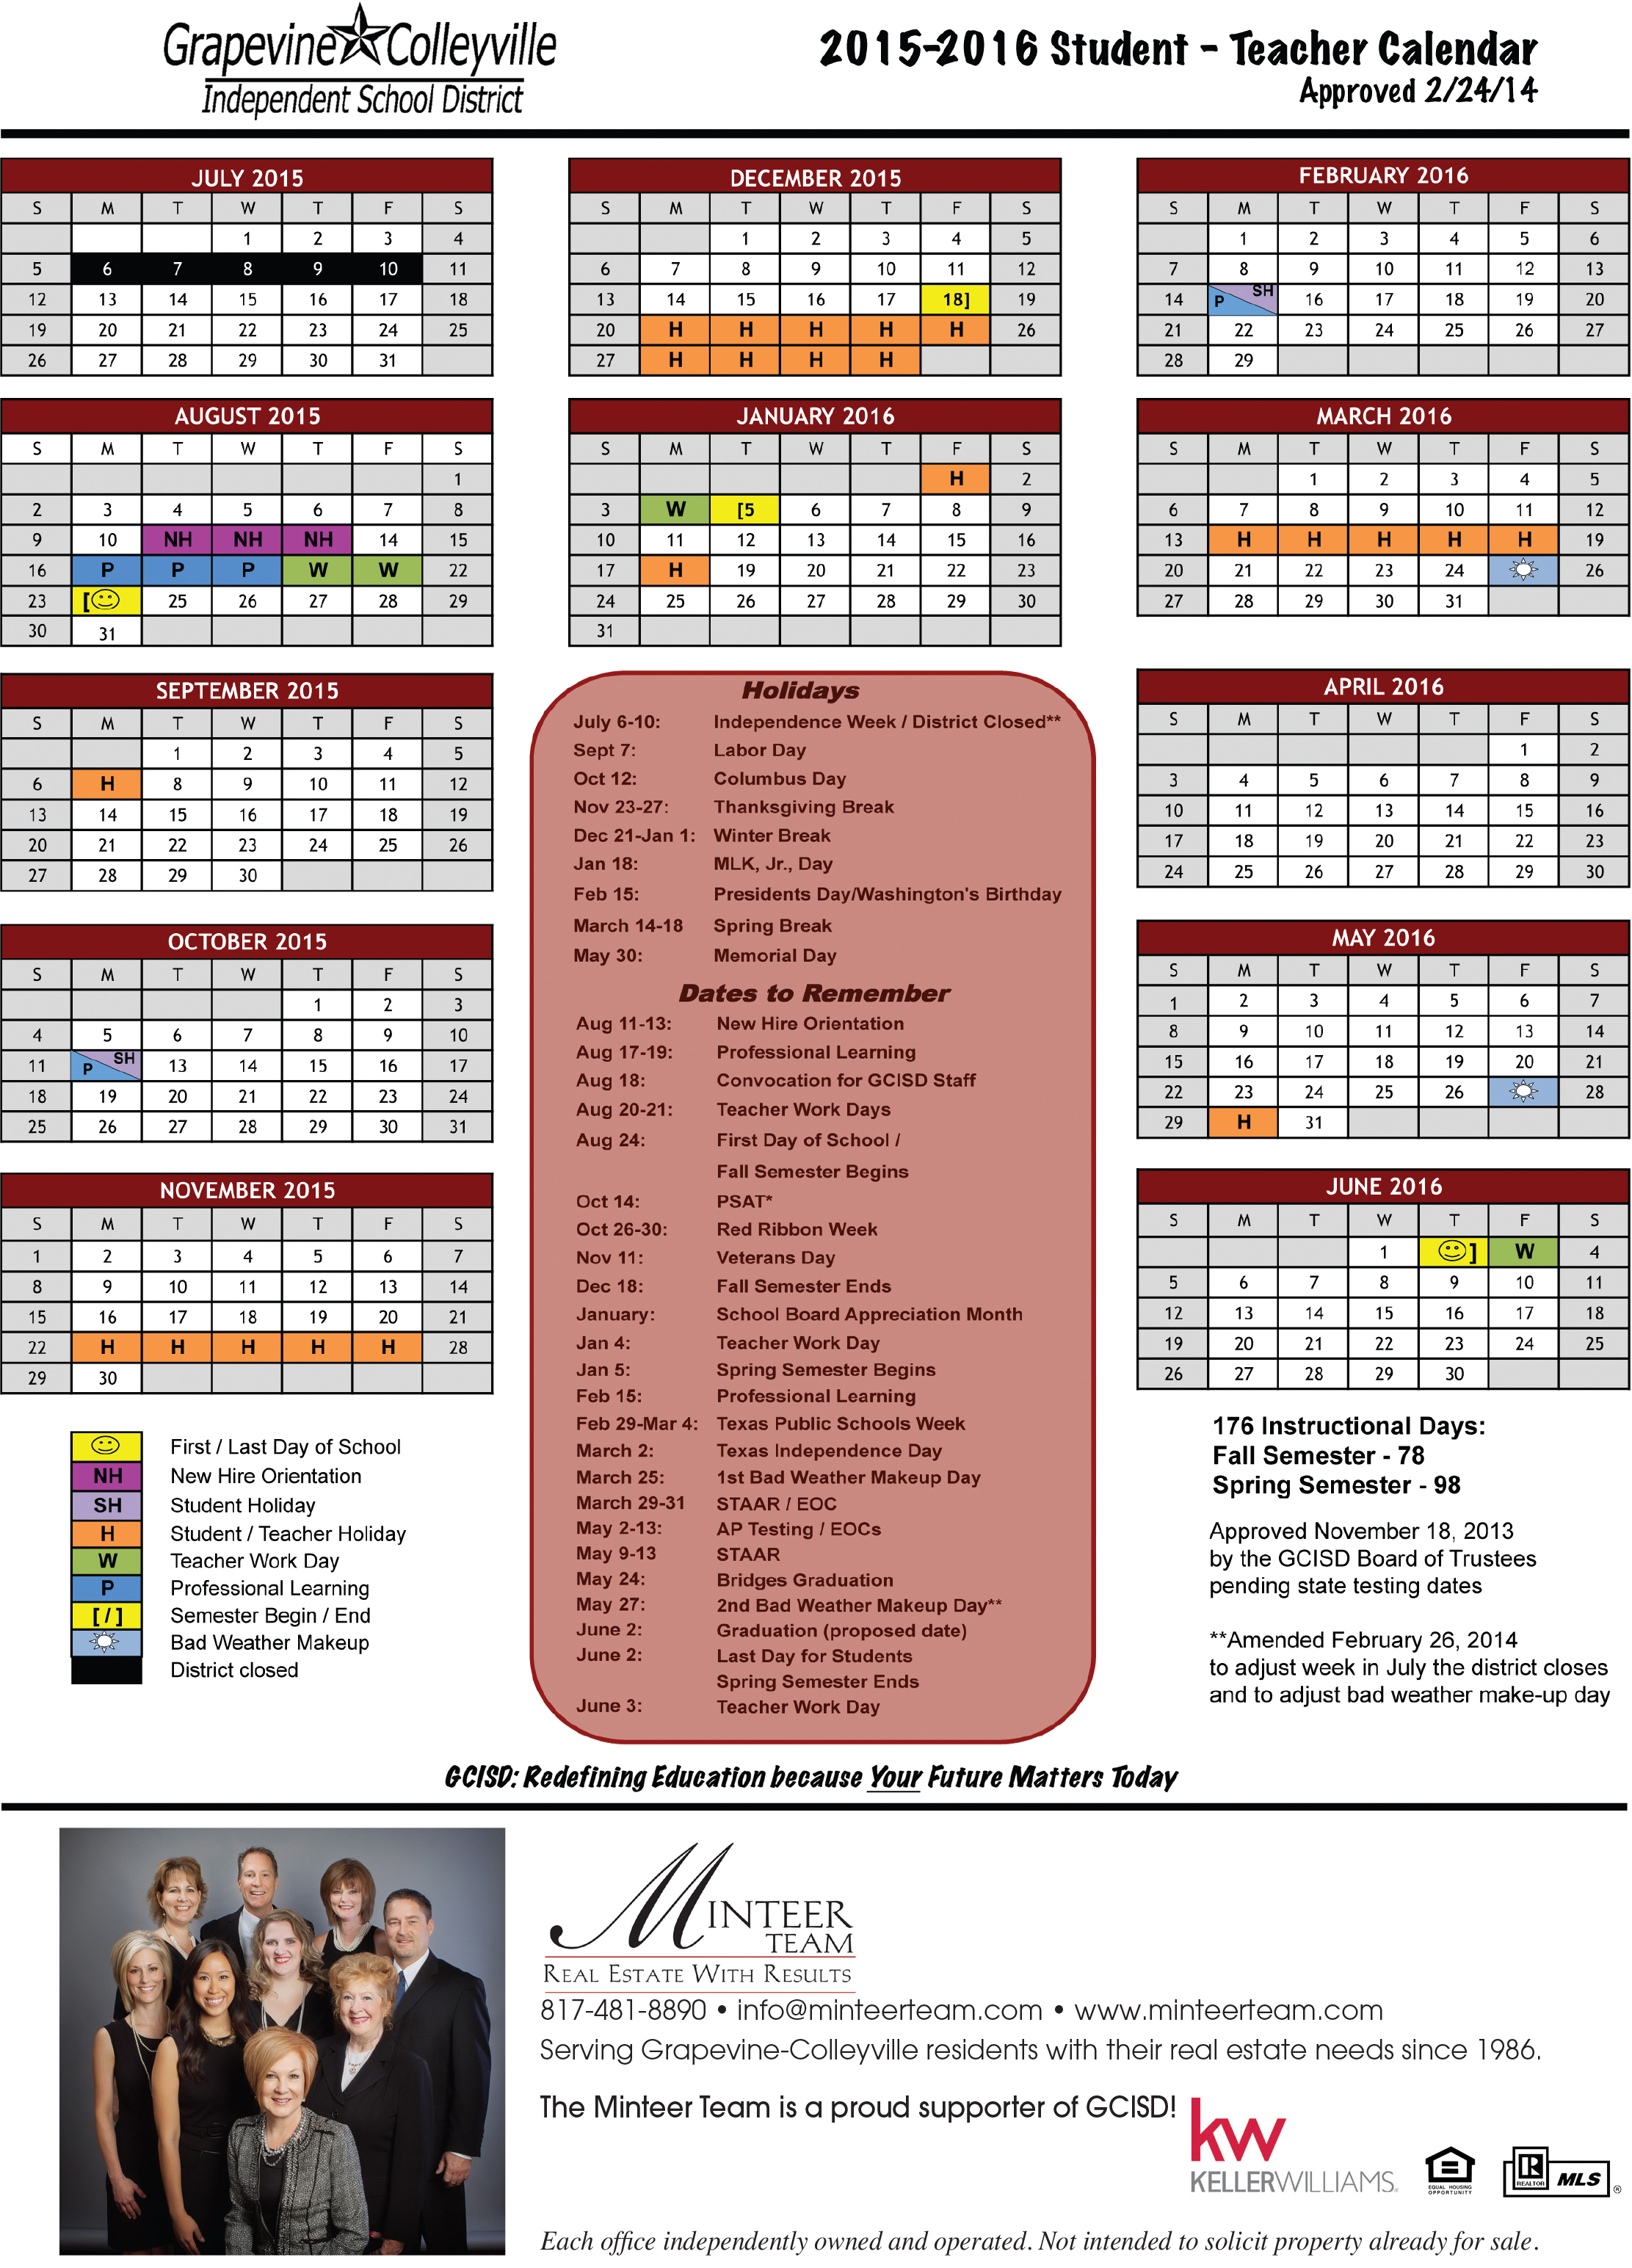 School Calendar For Gcisd (2015 2016) – Minteer Real Estate Team Within Fort Worth Isd Calendar